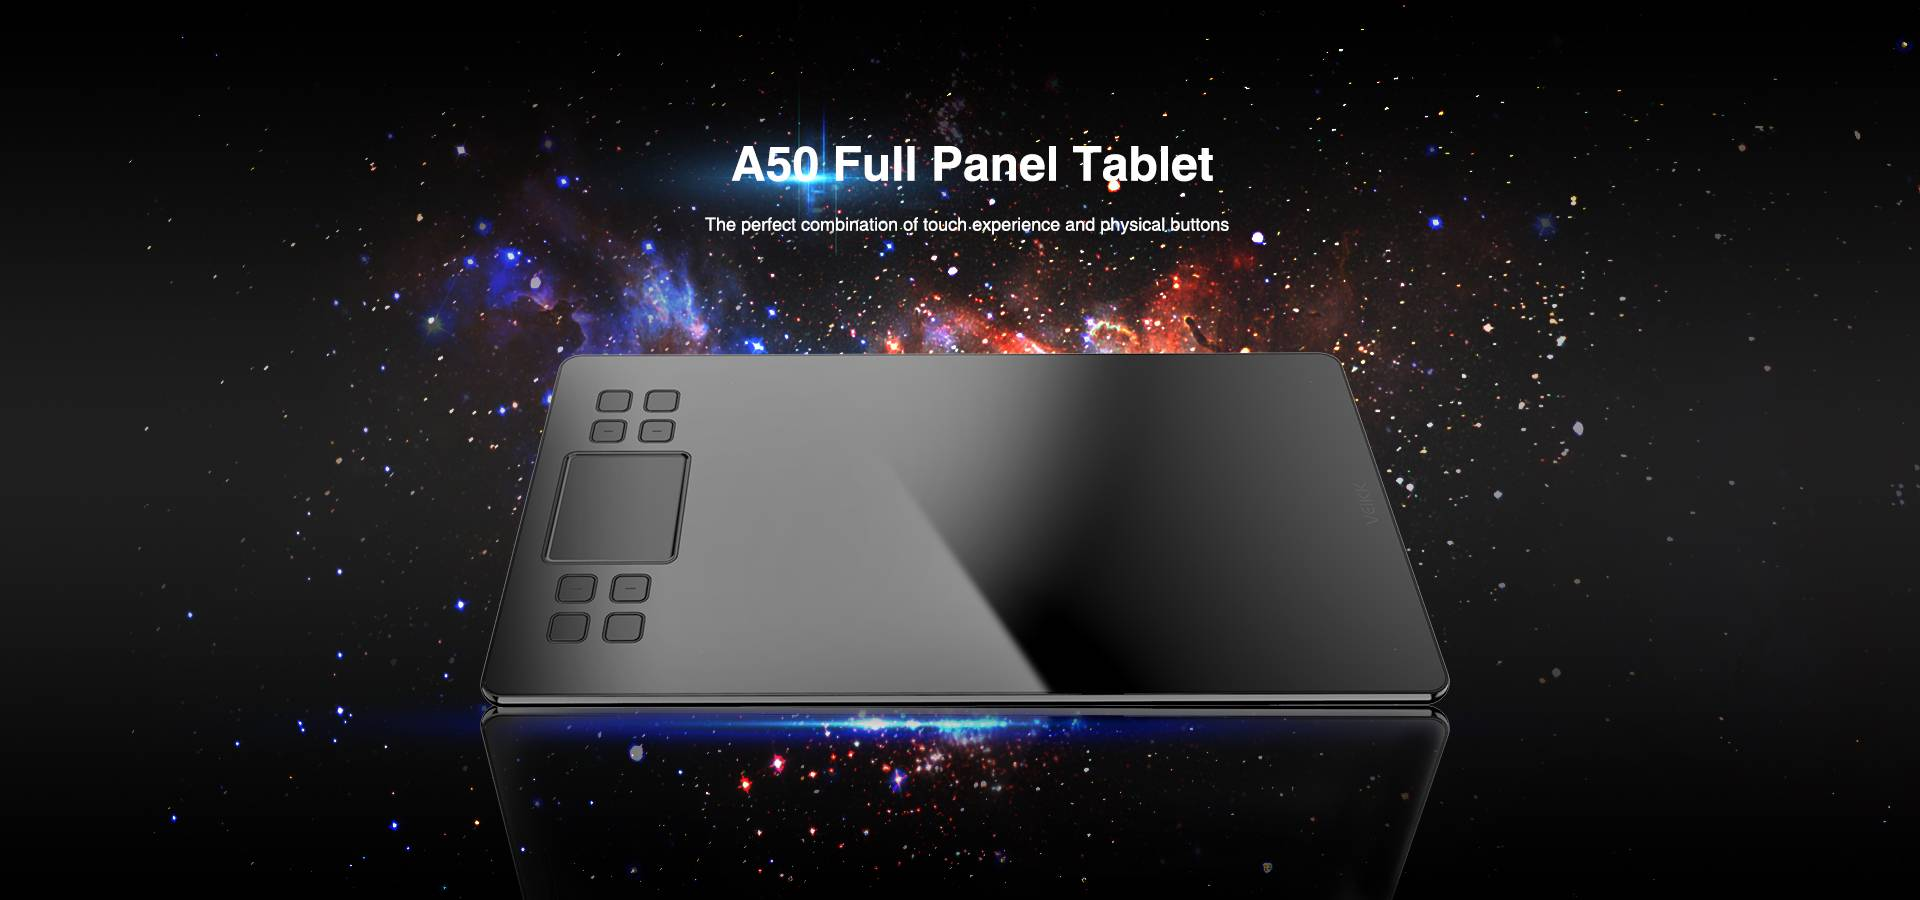 A50 Full Panel Tablet